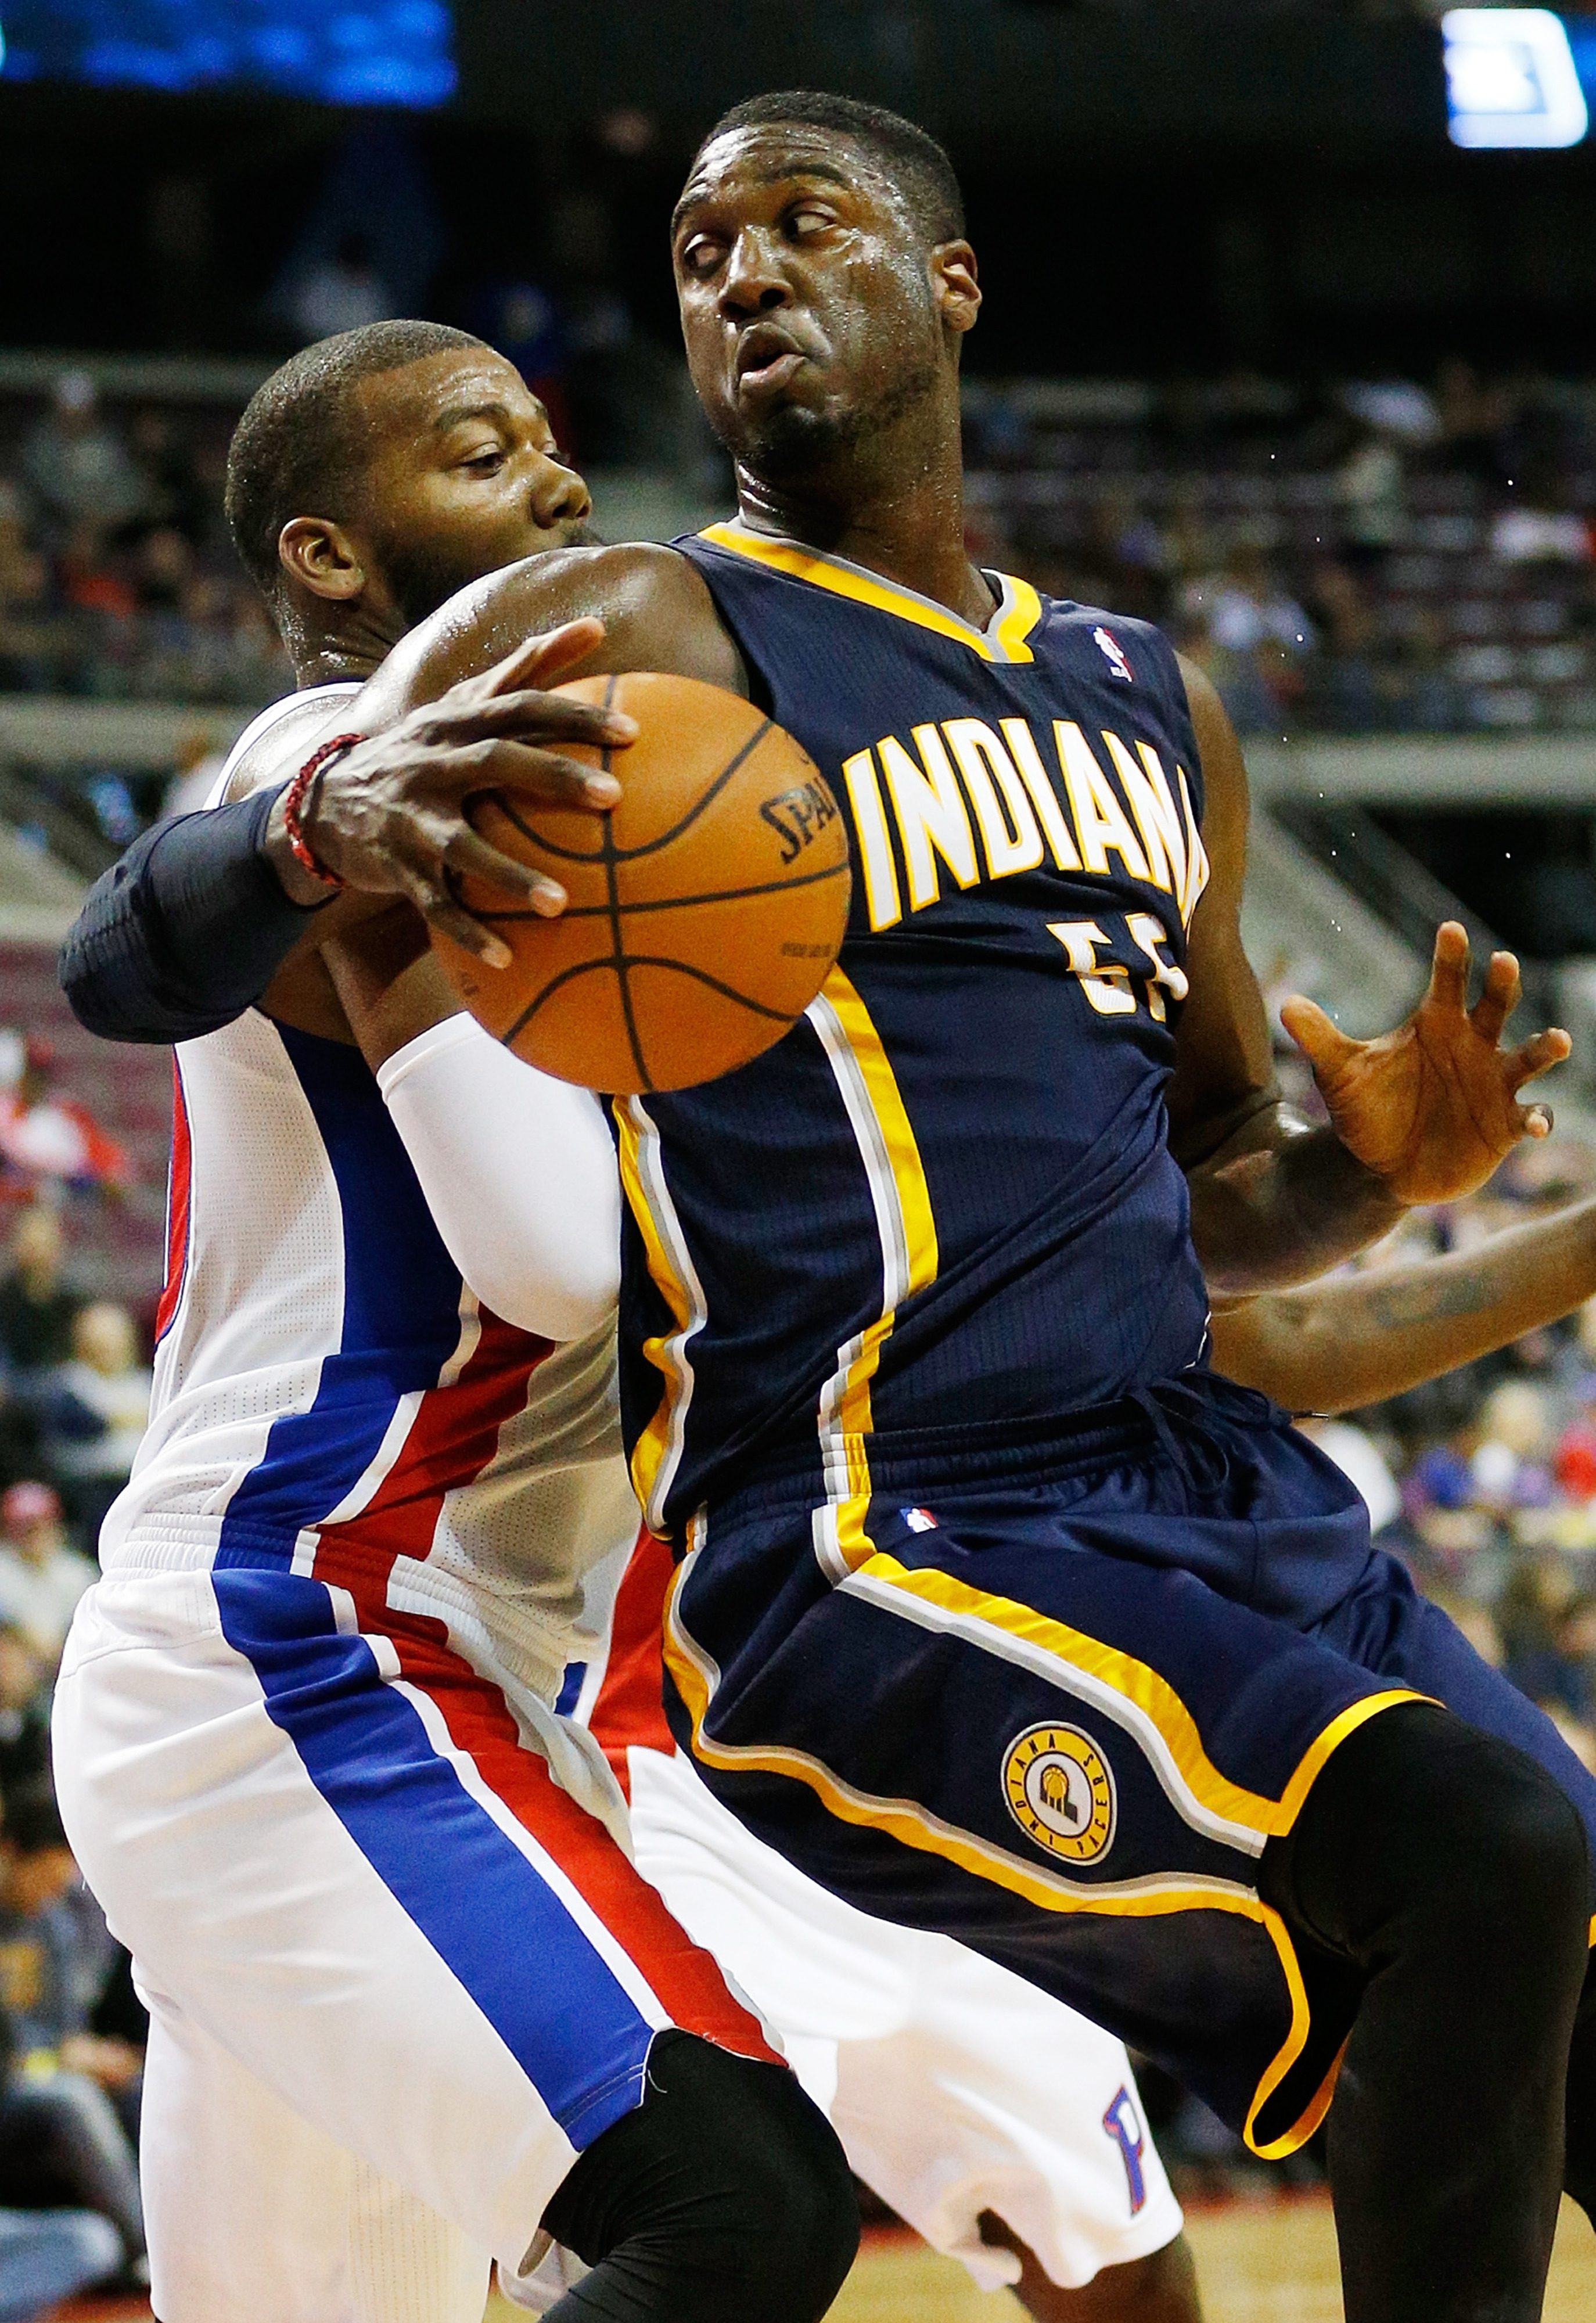 Pacers vs. Pistons final score: Indiana stays undefeated with 99-91 win in Detroit